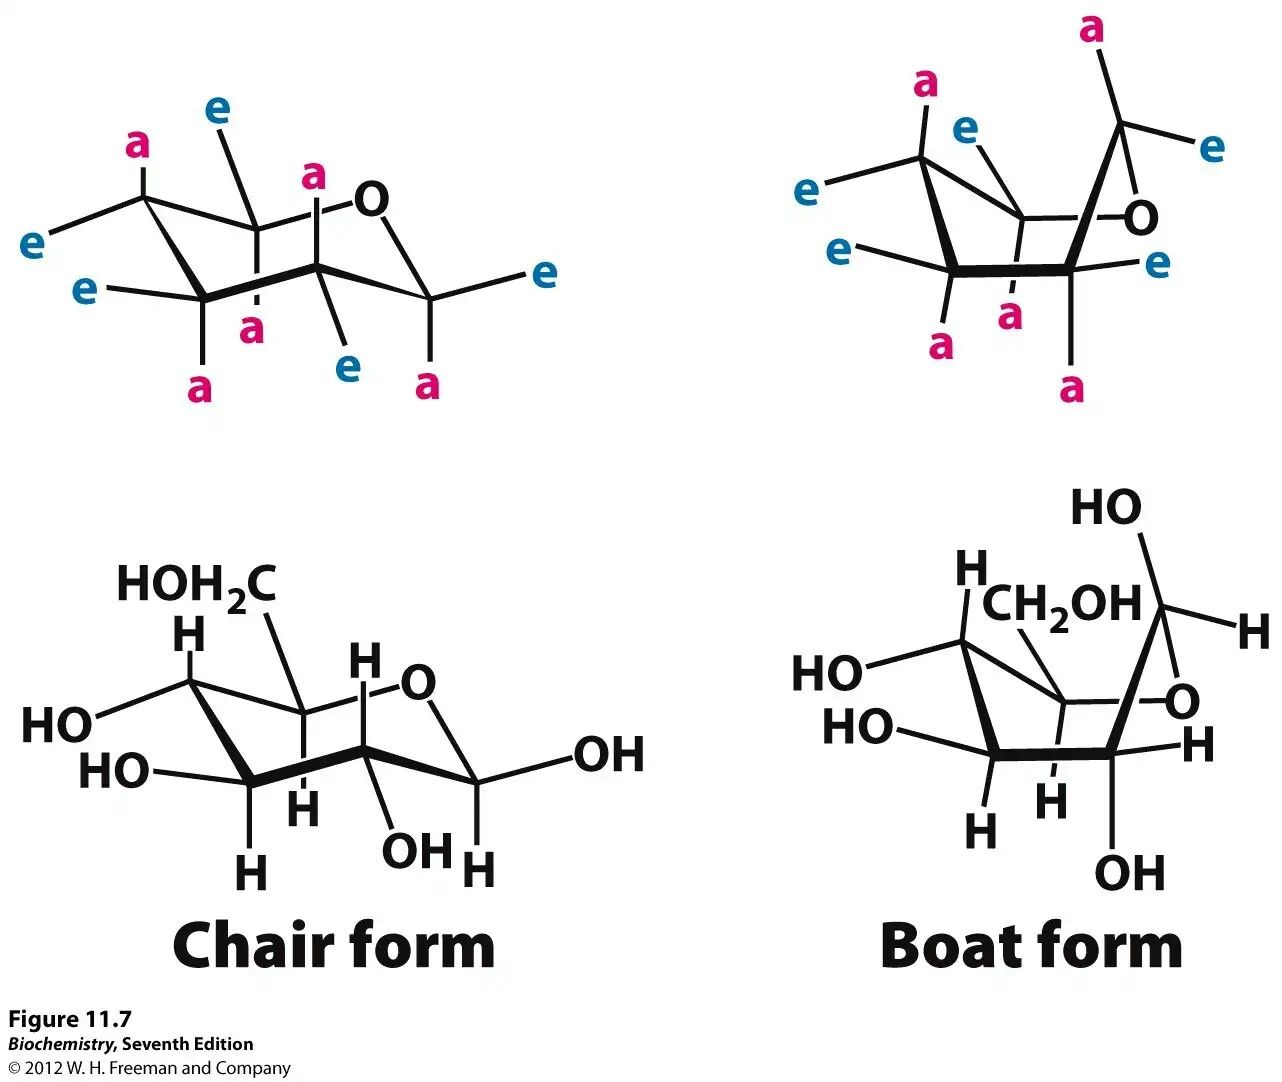 Chair form & boat form of sugars